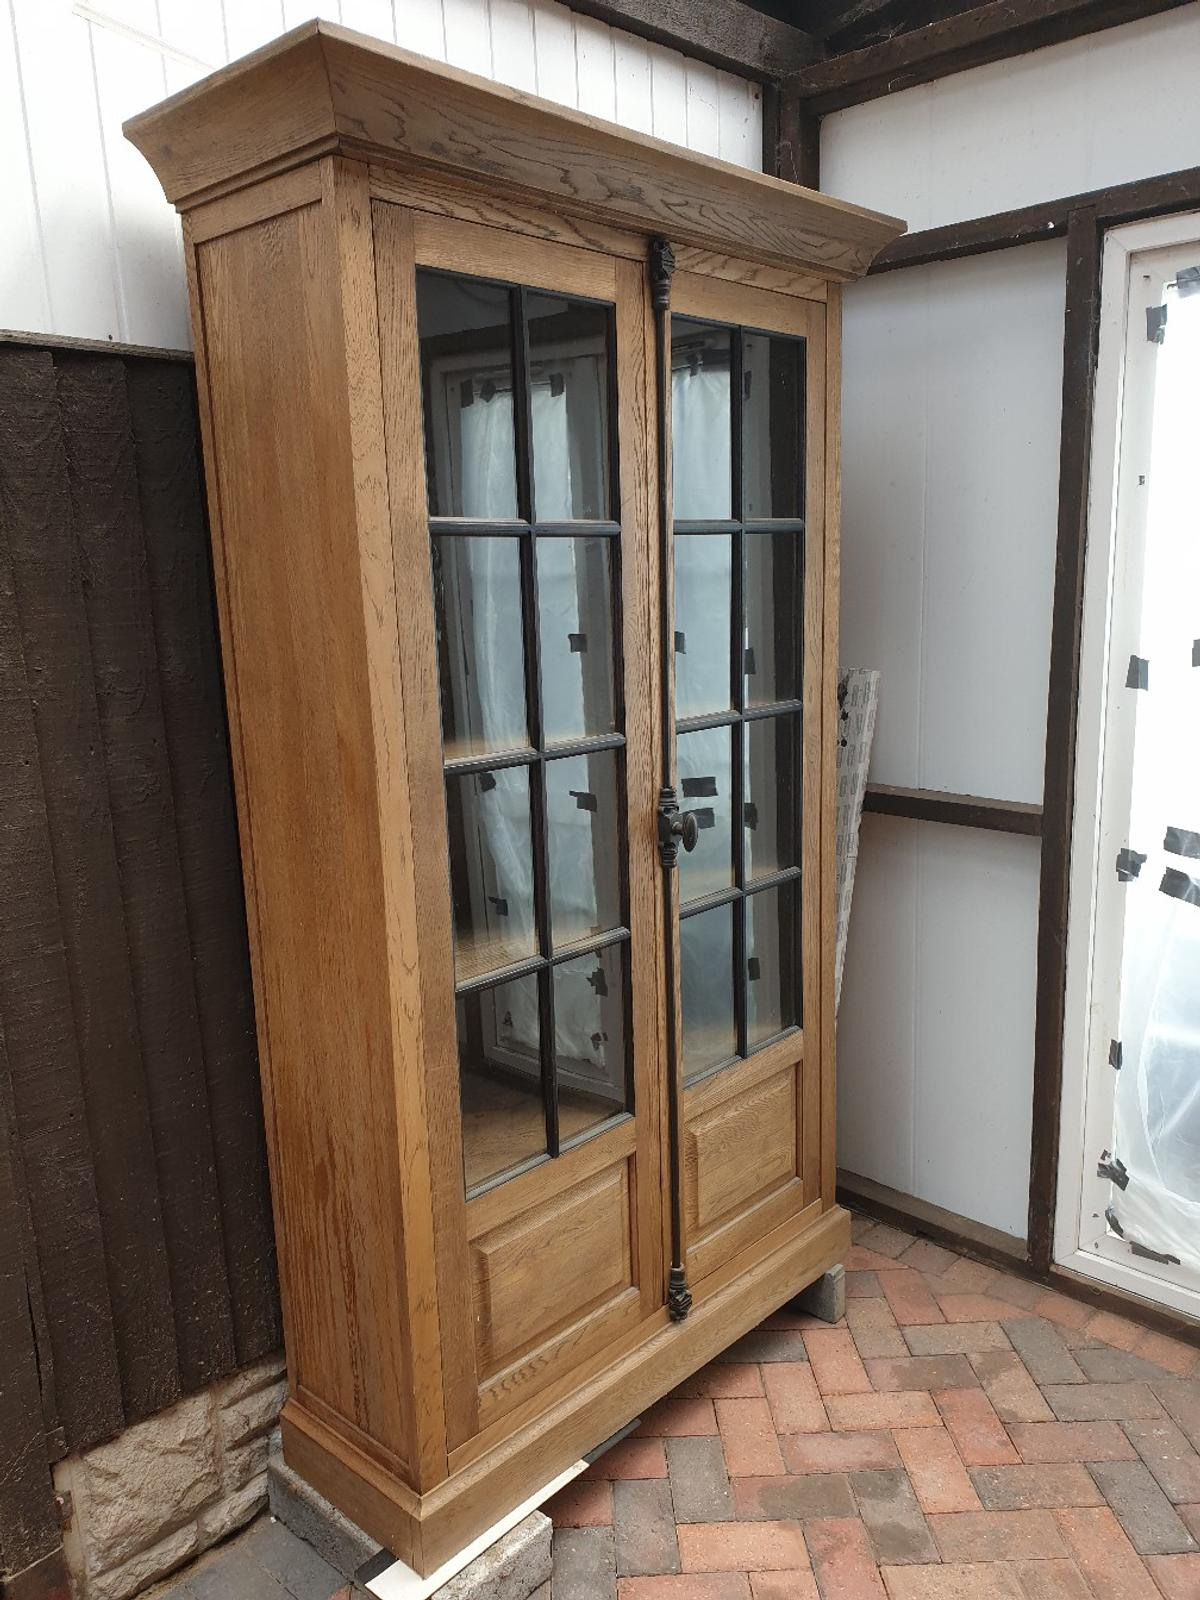 This sold hard wood cabinet is in top condition. A really nice design. Glass and wood doors. Has to be viewed.